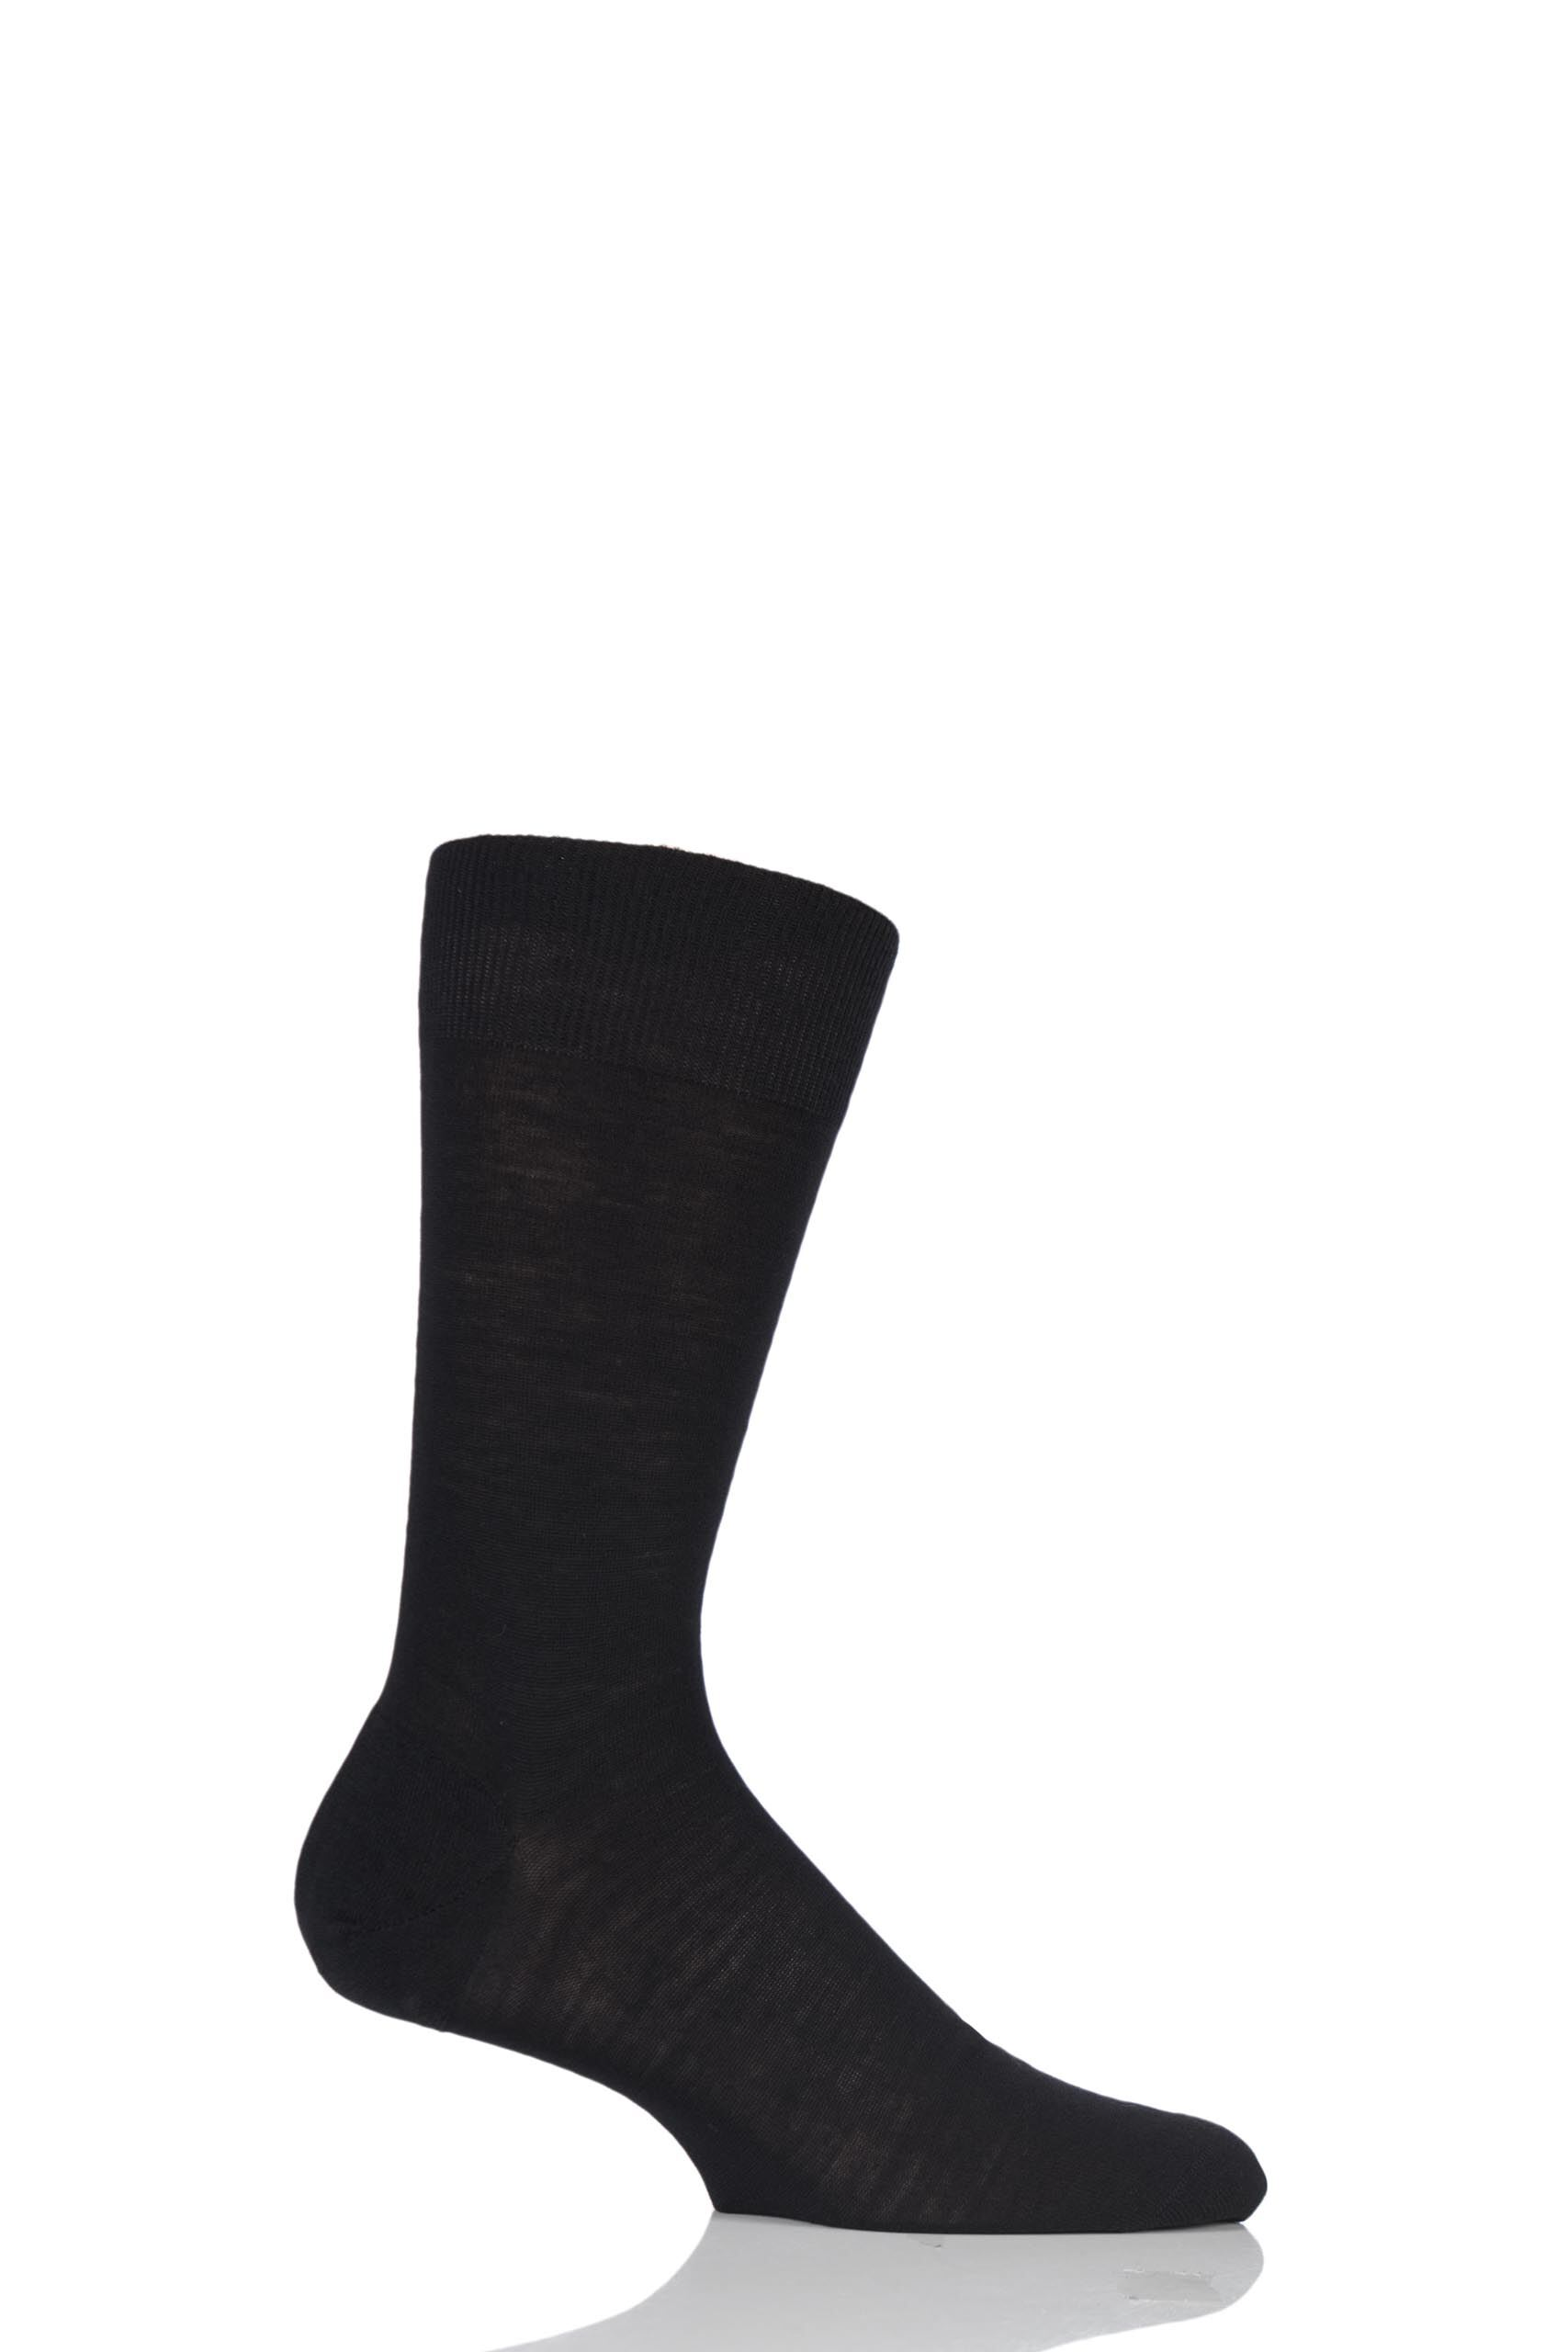 Image of 1 Pair Black Camden Merino Wool Plain Socks Men's 7.5-9.5 Mens - Pantherella